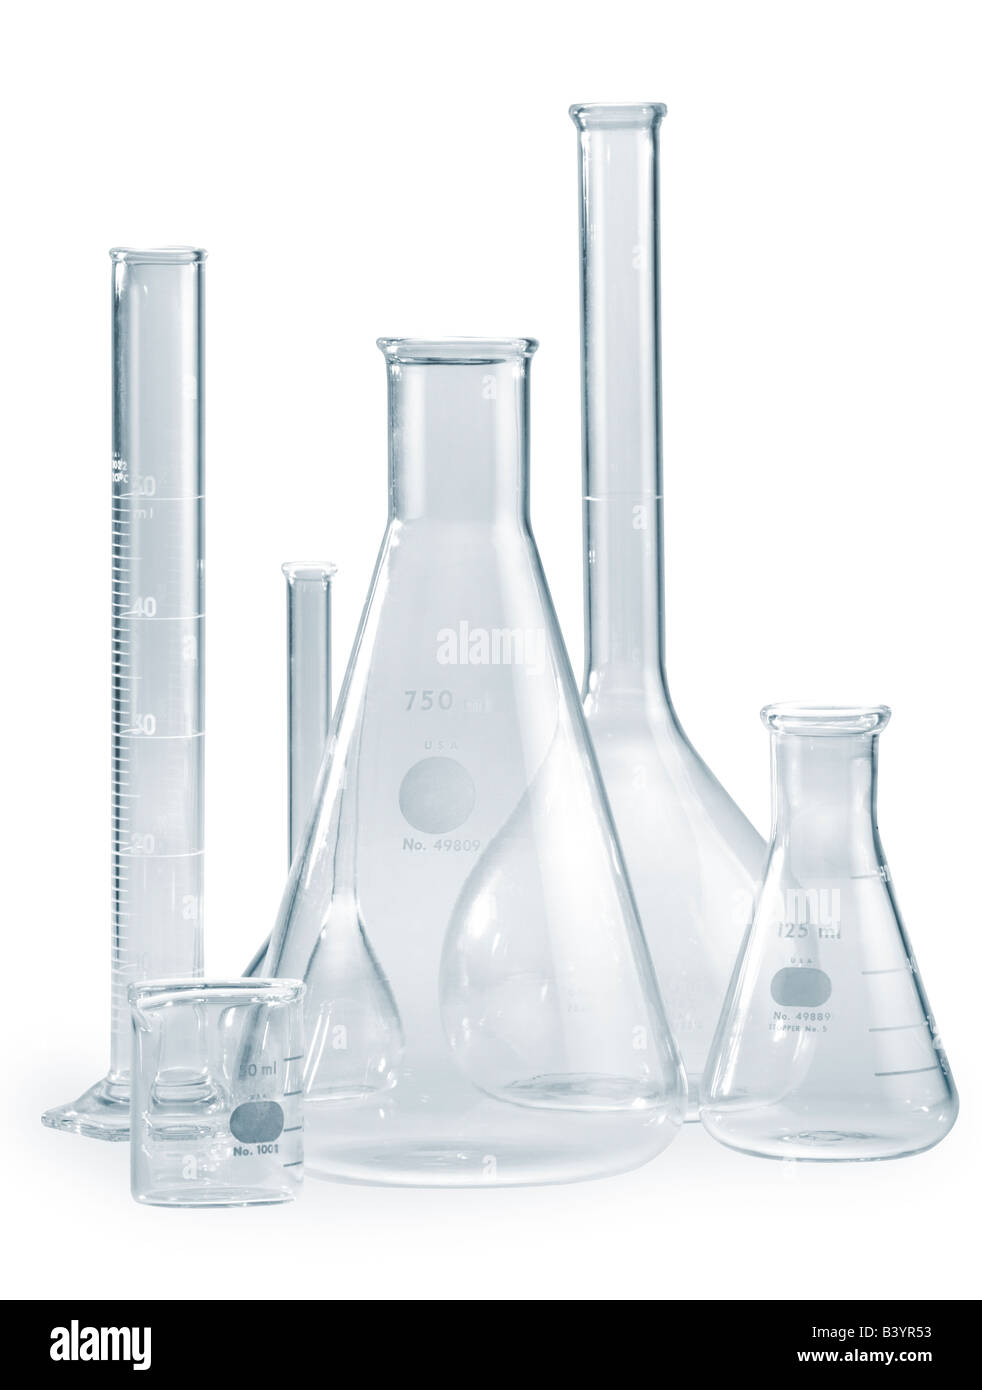 Empty glass Pyrex beakers as might be seen in a laboratory setting A clipping path is included - Stock Image